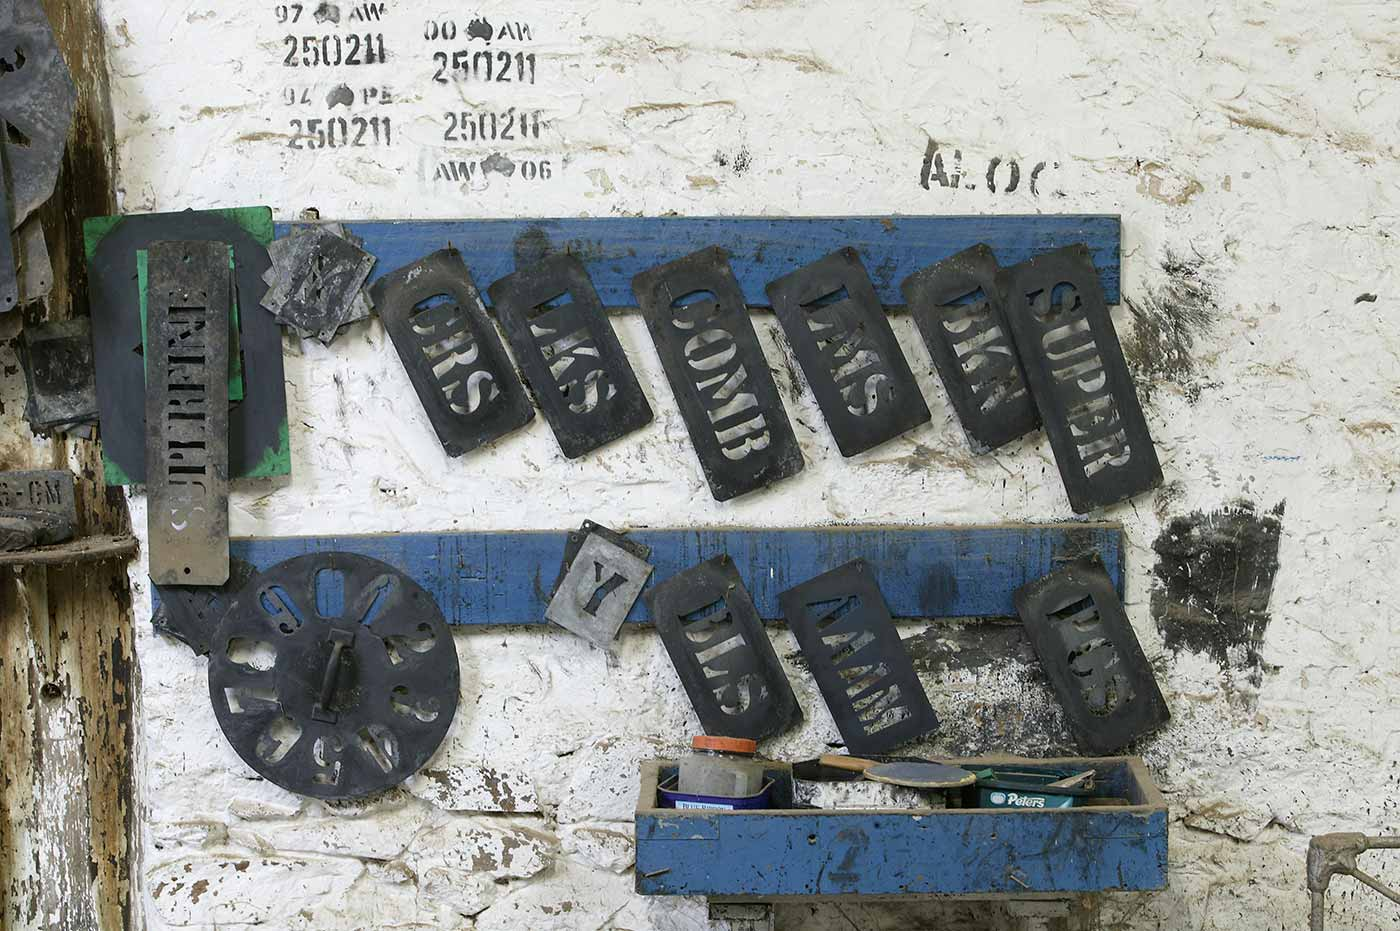 Wool bale stencils hanging on their hooks. - click to view larger image